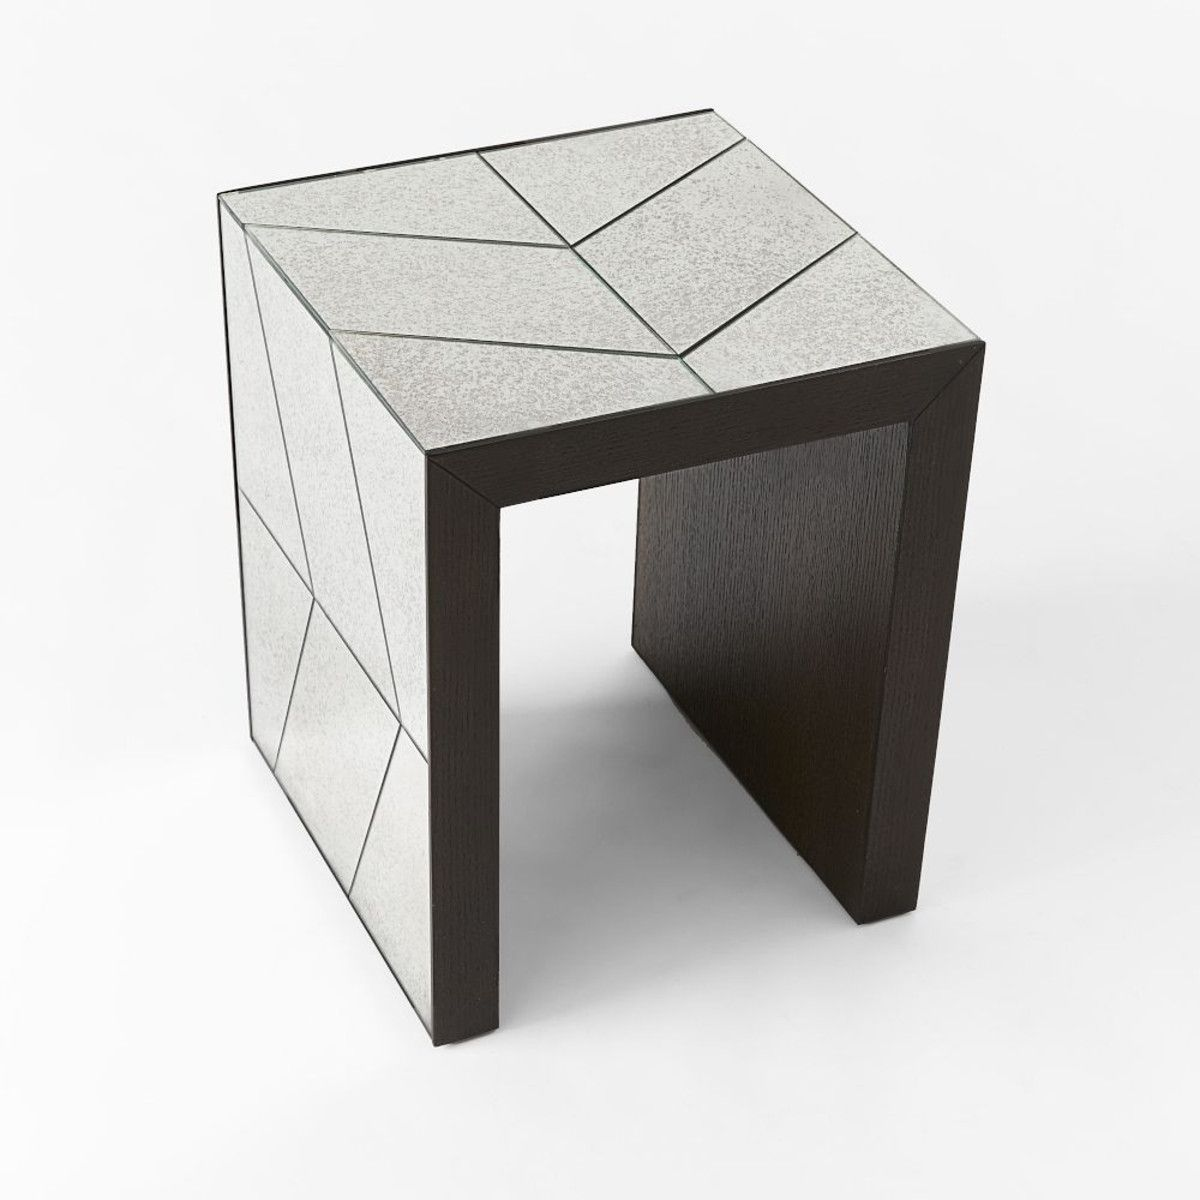 pin naomi mills interior exterior design mirrored side accent table west elm herringbone mirror del furniture toronto modern black end cabinet jcpenney kitchen curtains antique